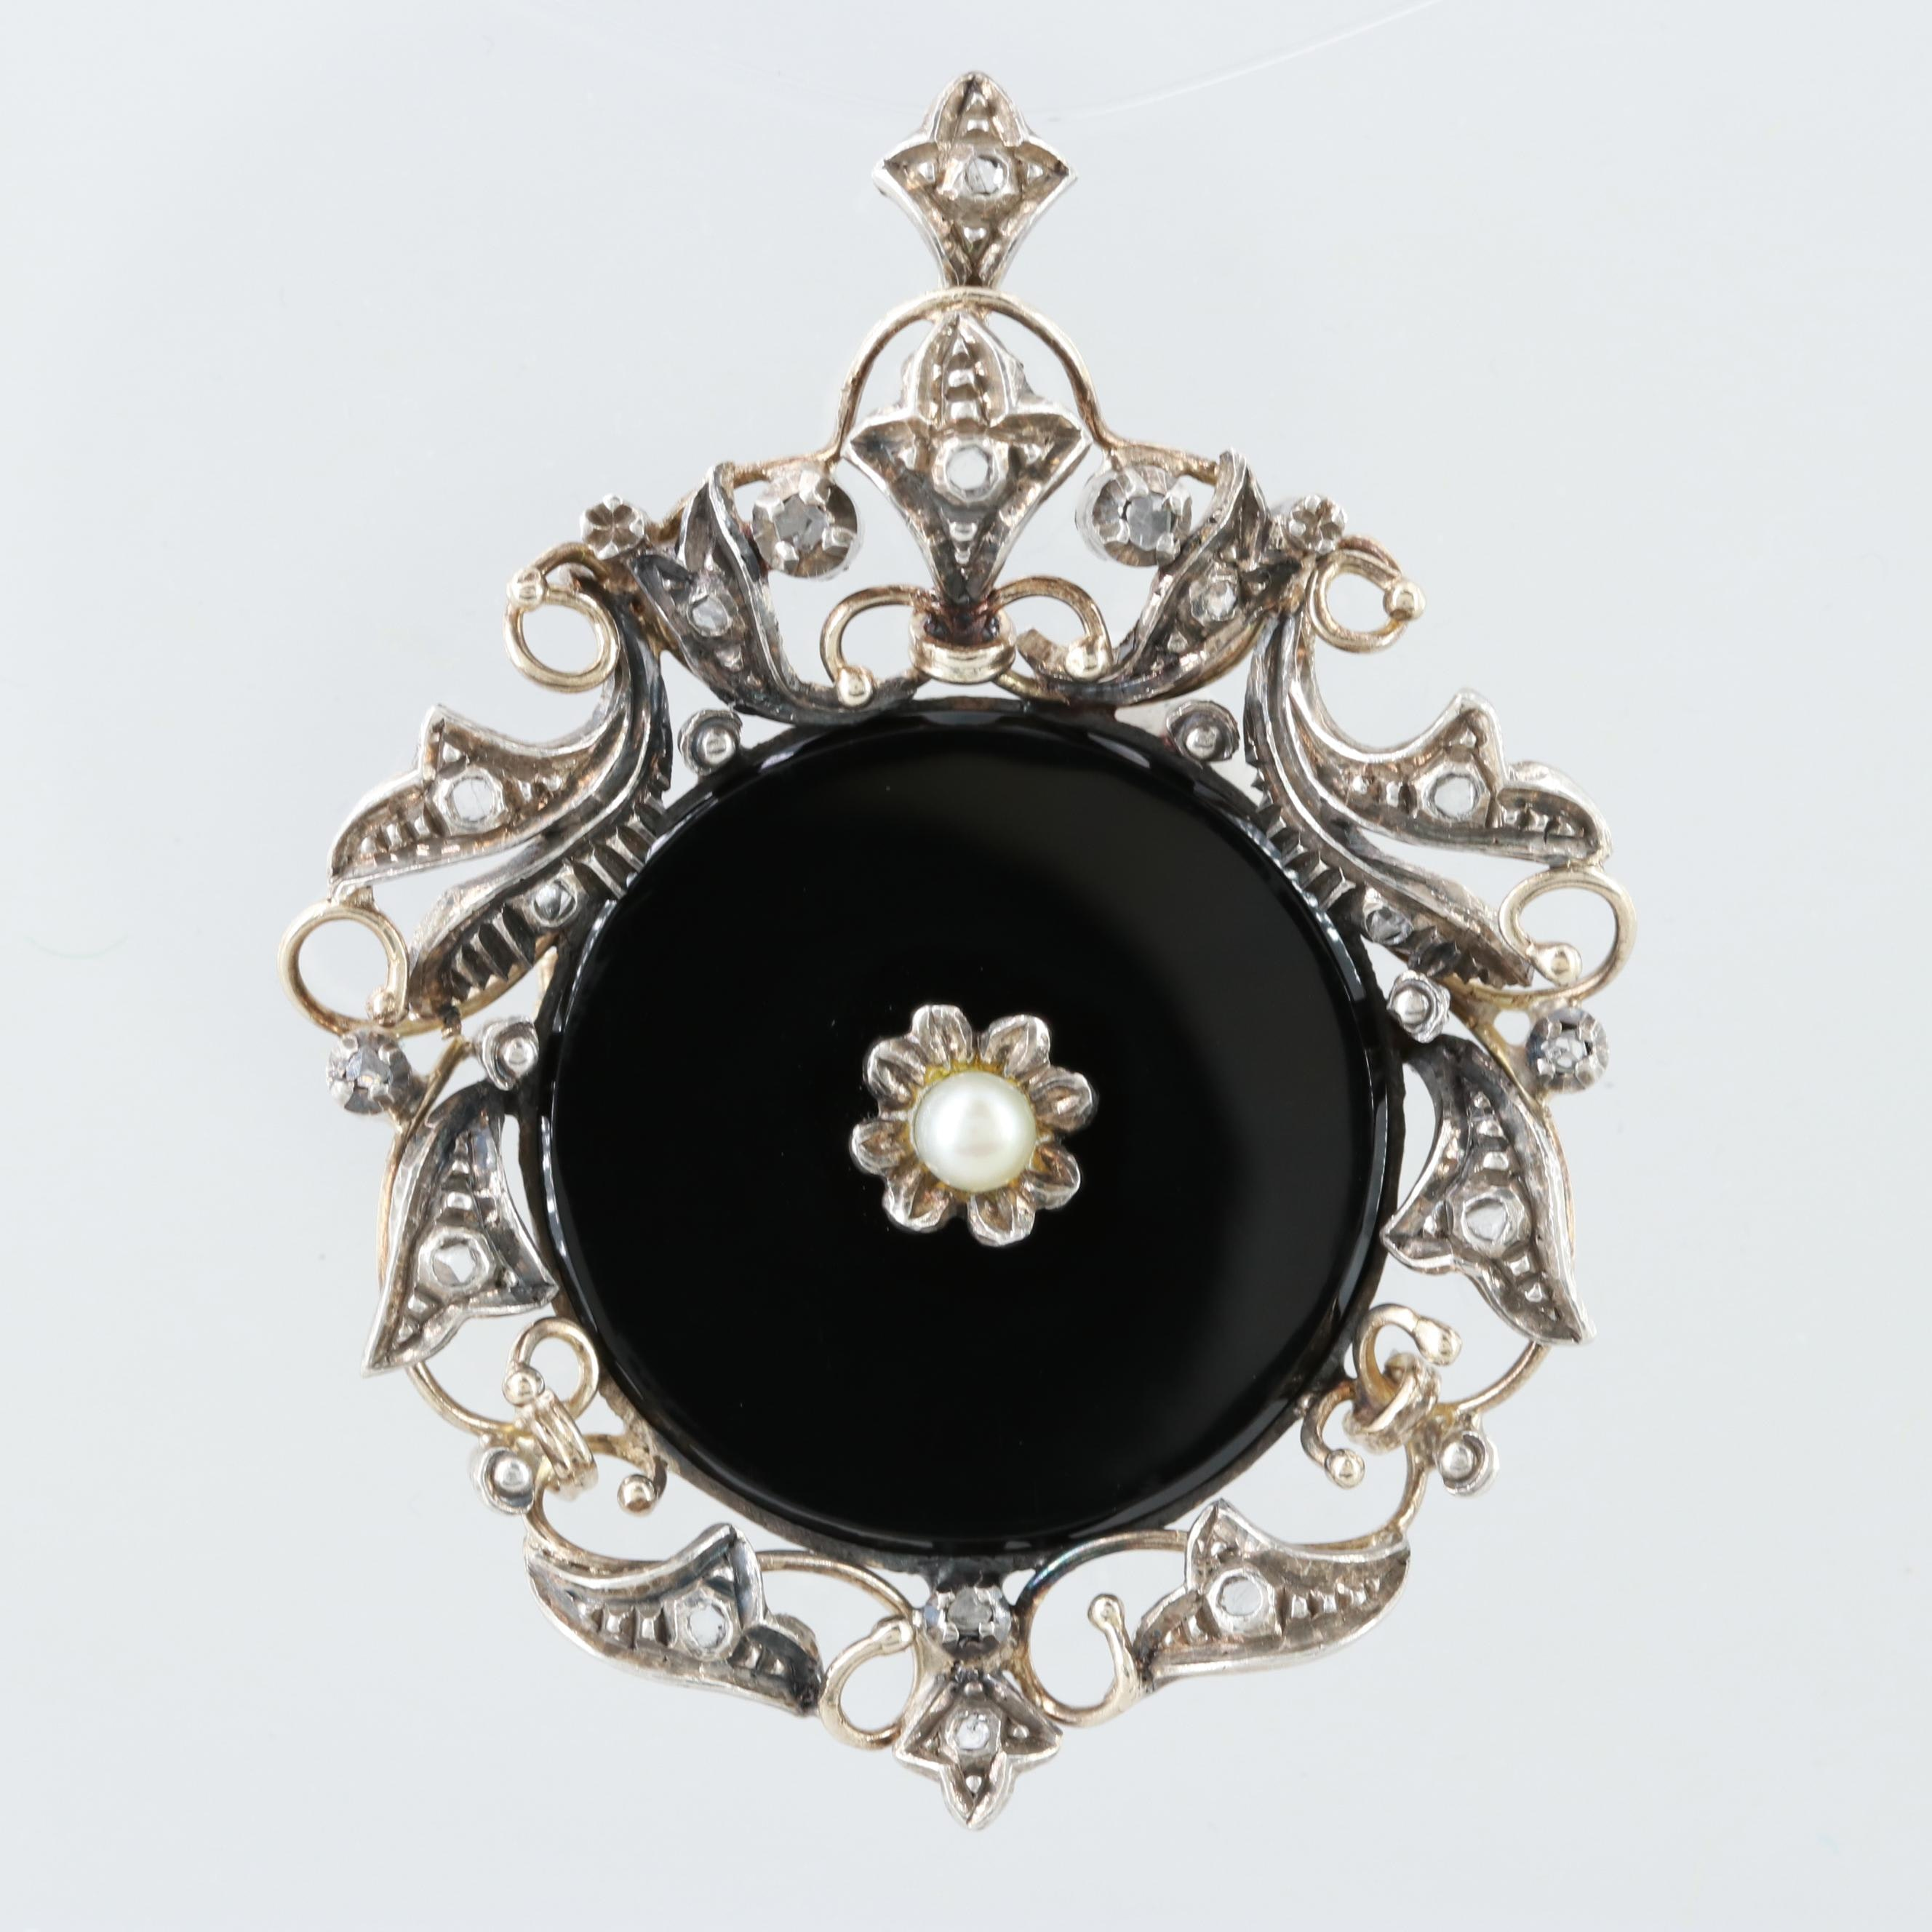 Victorian 19K White Gold and Sterling Silver Black Onyx Converter Brooch